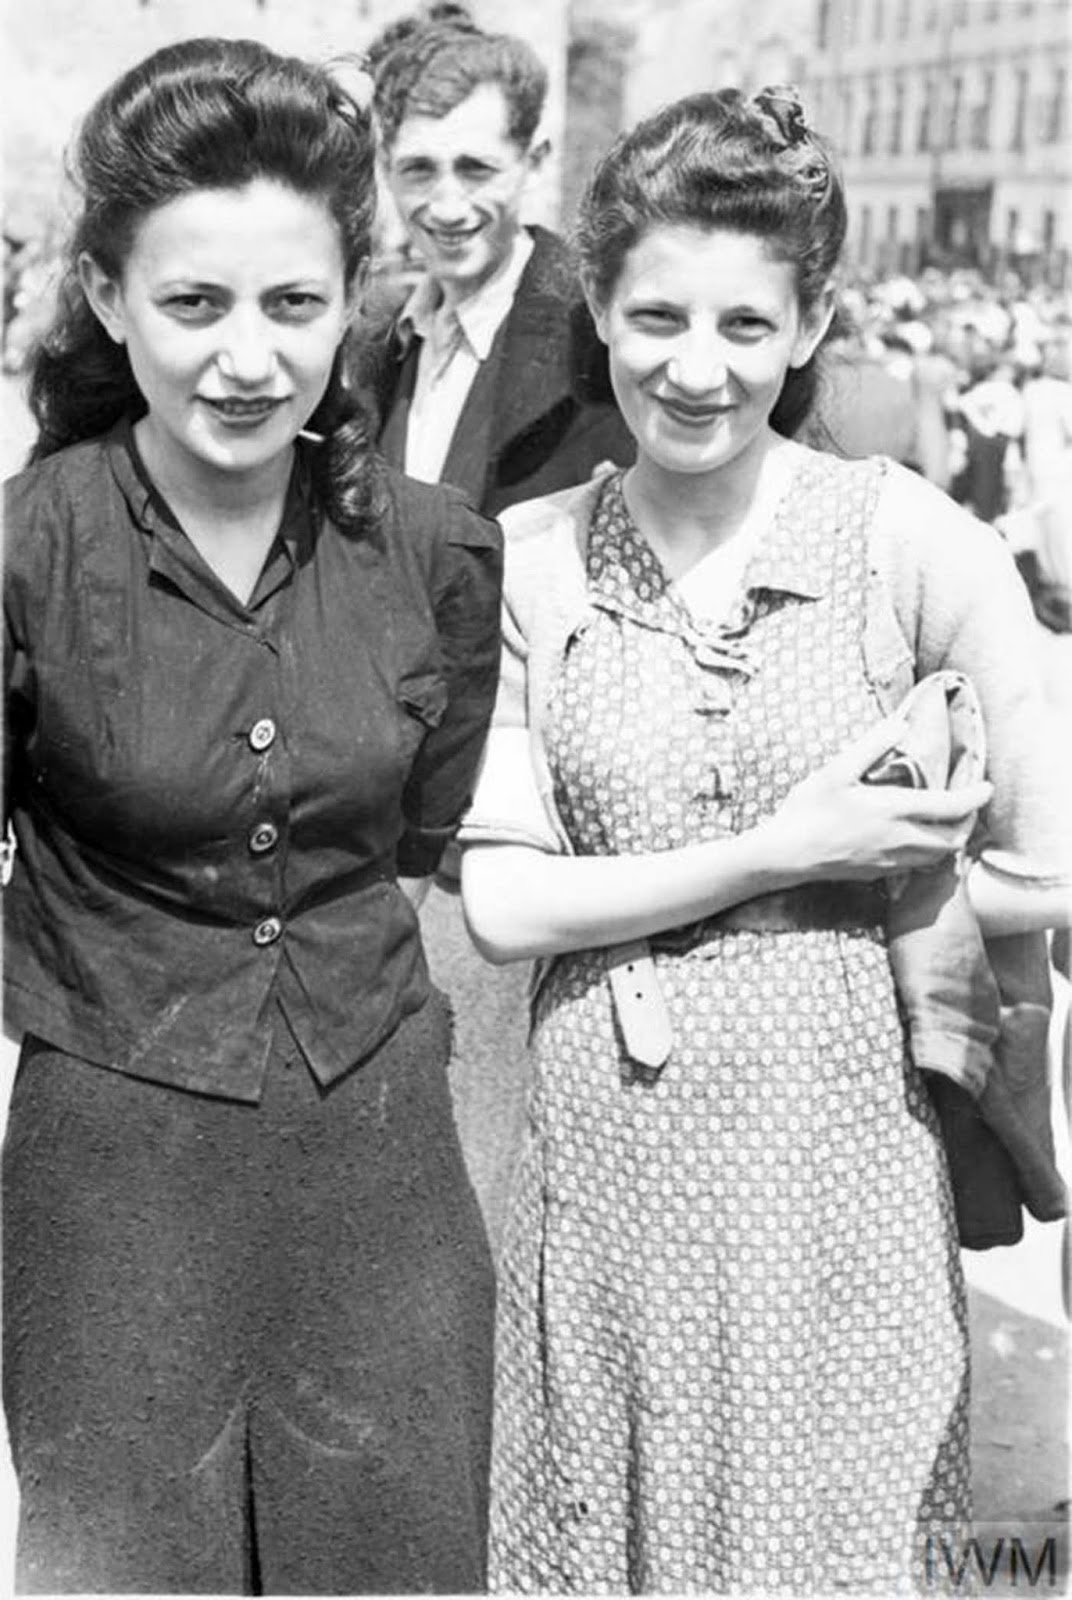 Two well dressed women, most likely sisters, posing for a photograph in a street market.